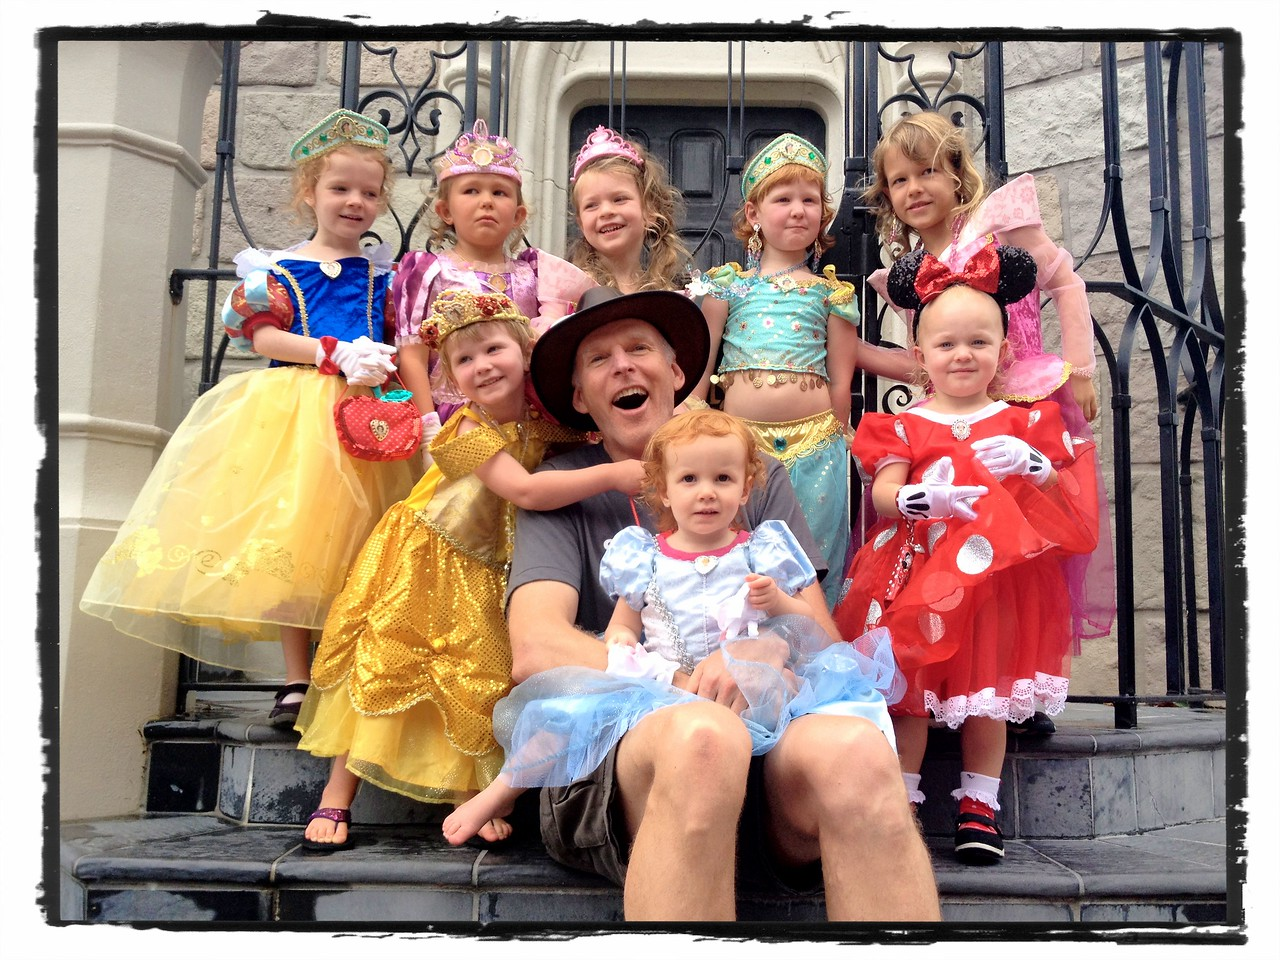 Baldy & the princesses at Disneyworld 2012